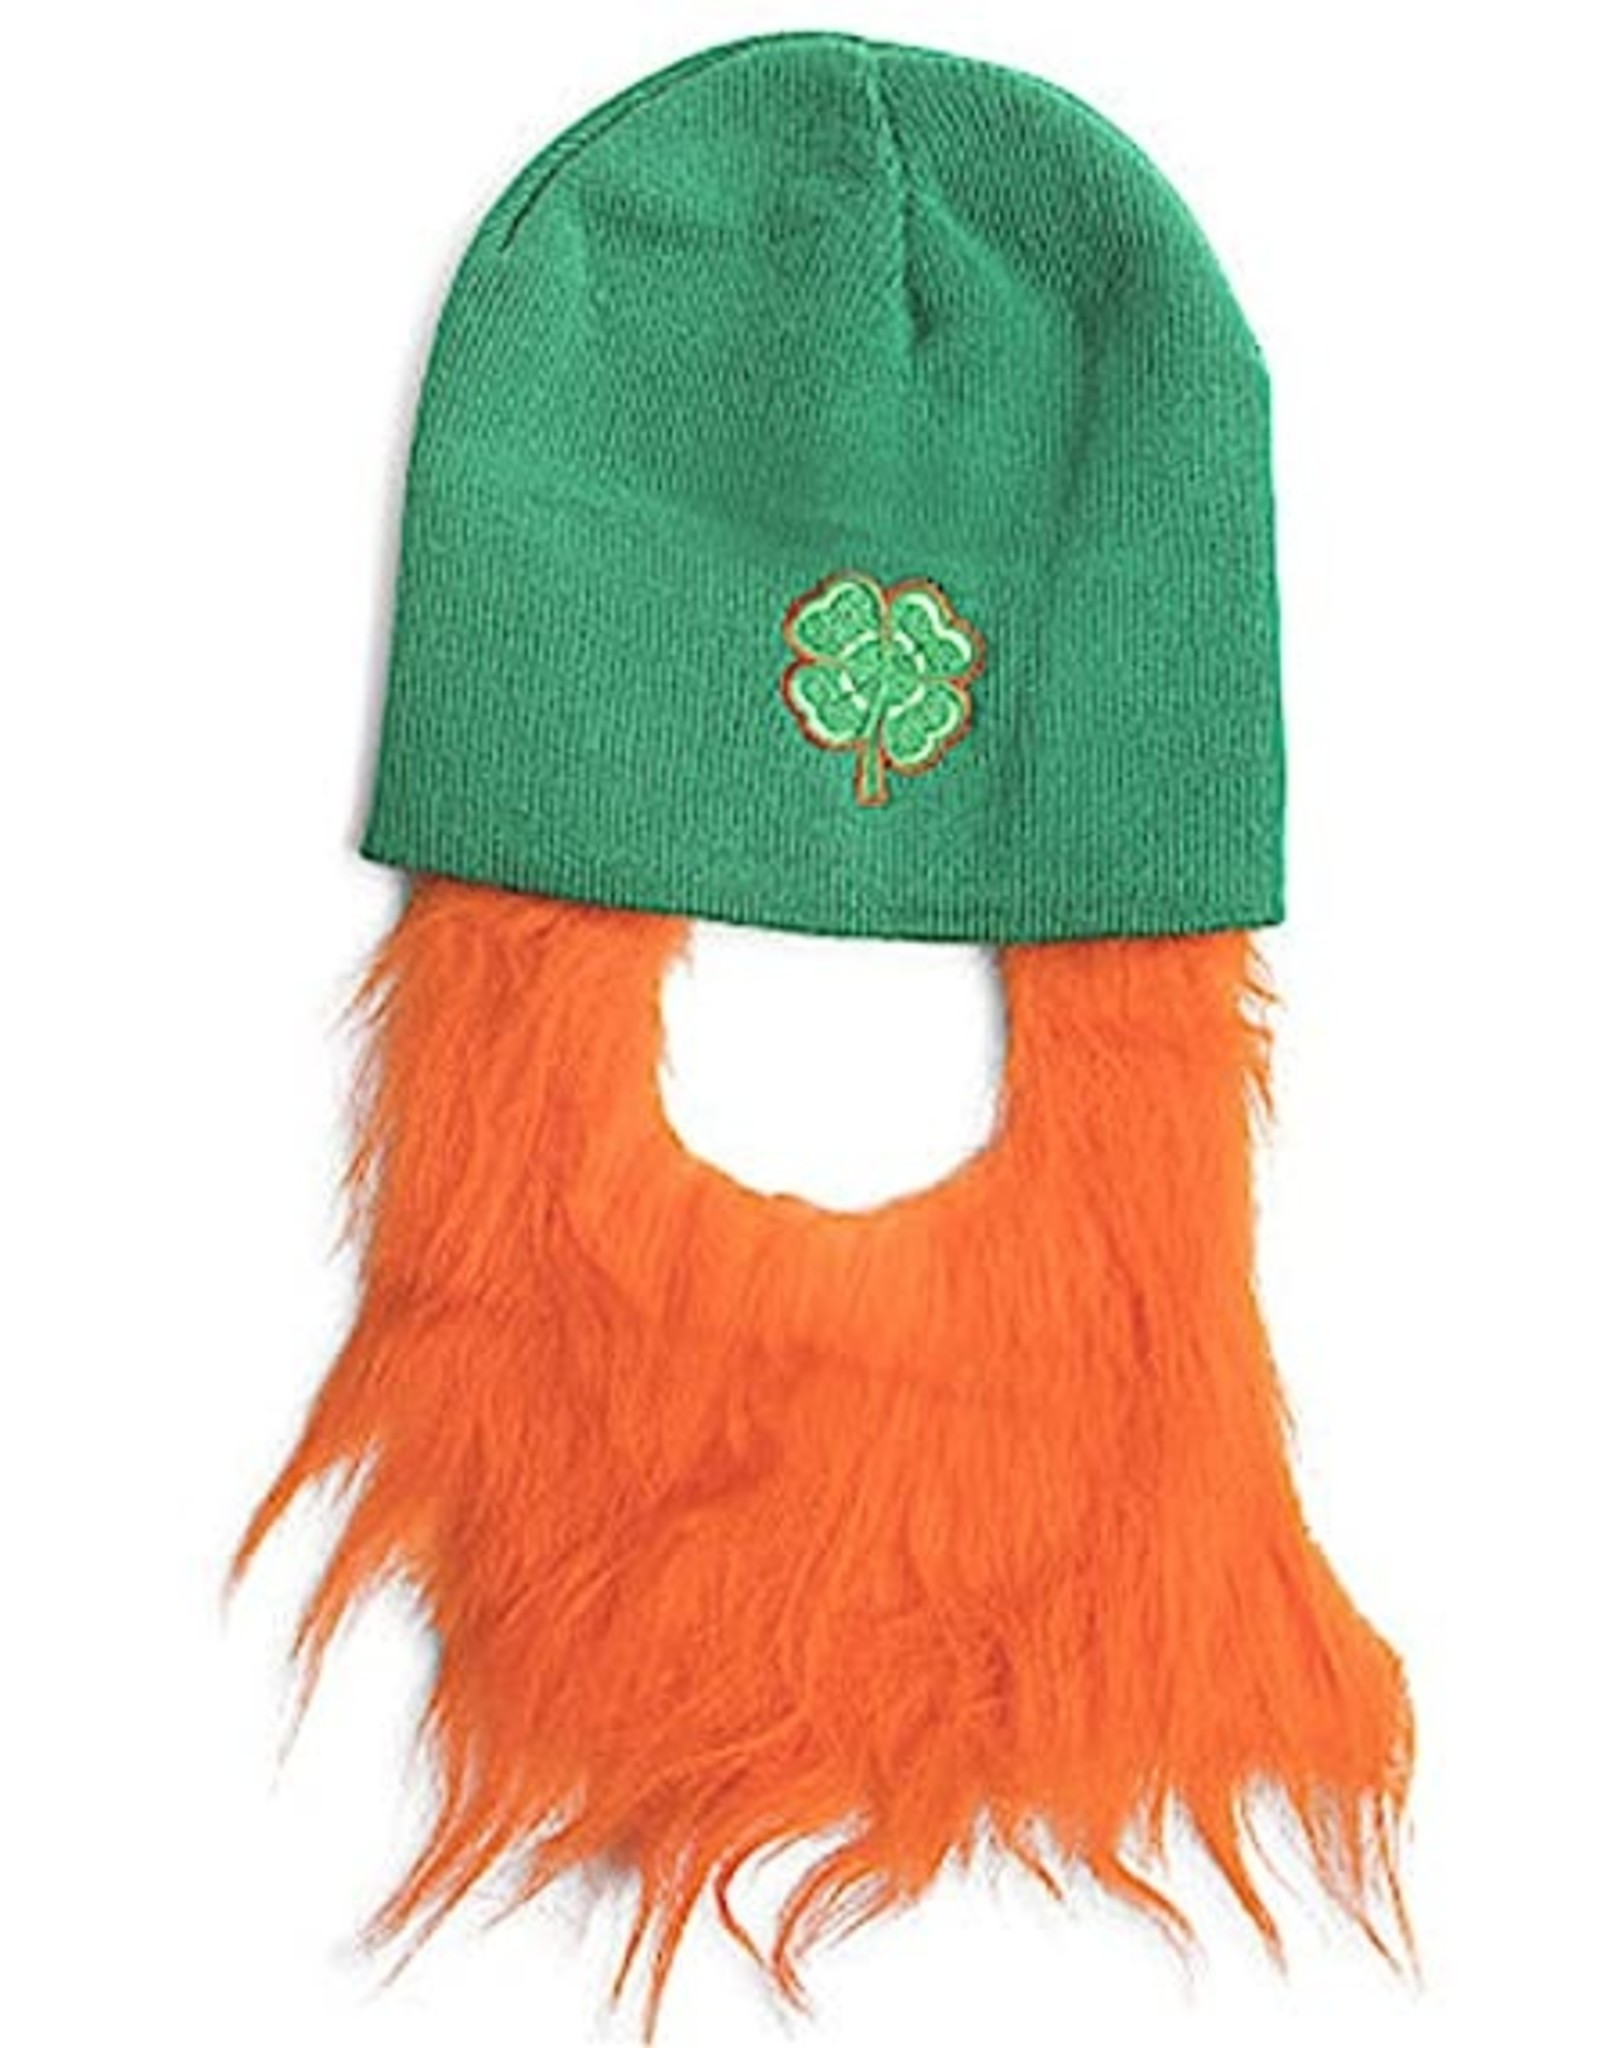 Wallys party factory Knit Beanie with Beard